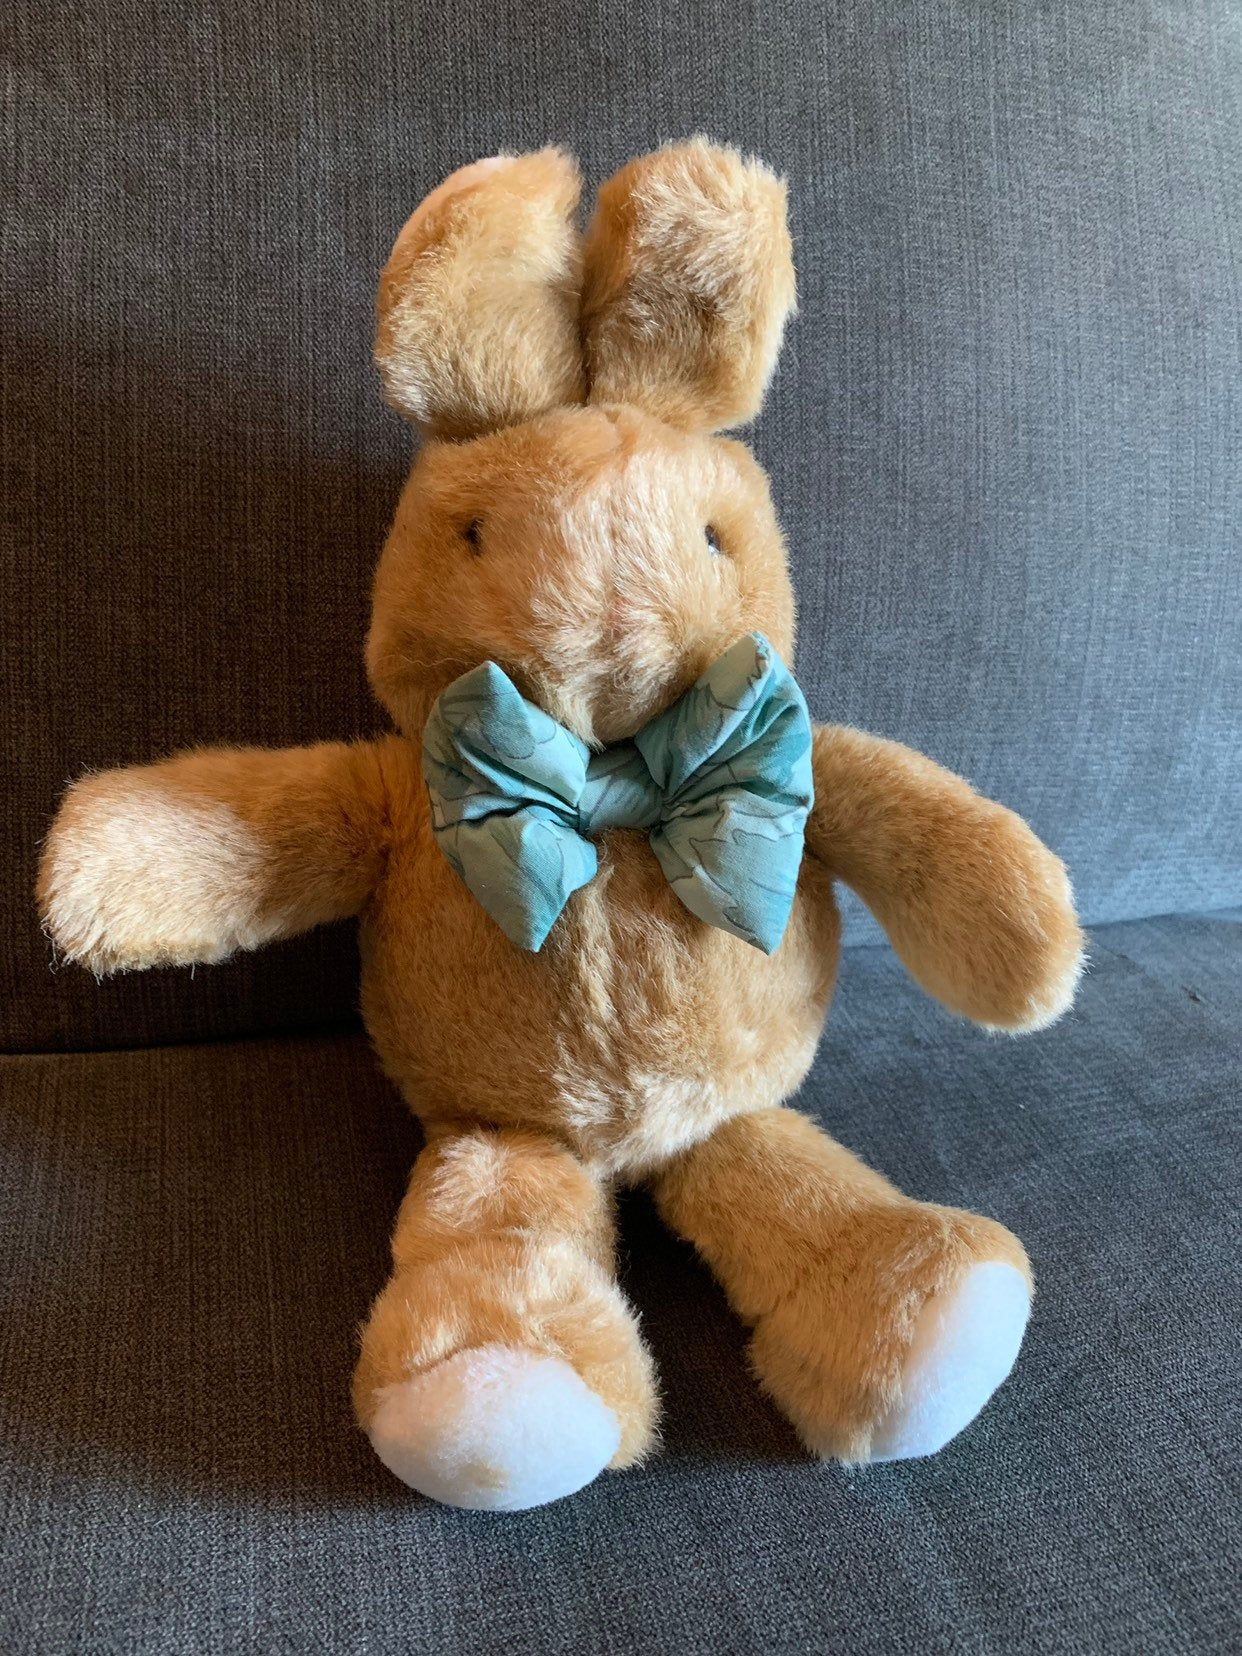 Commonwealth Bunny Plush Rabbit 1991, Brown and white fur with green pattern tie #bunnyplush